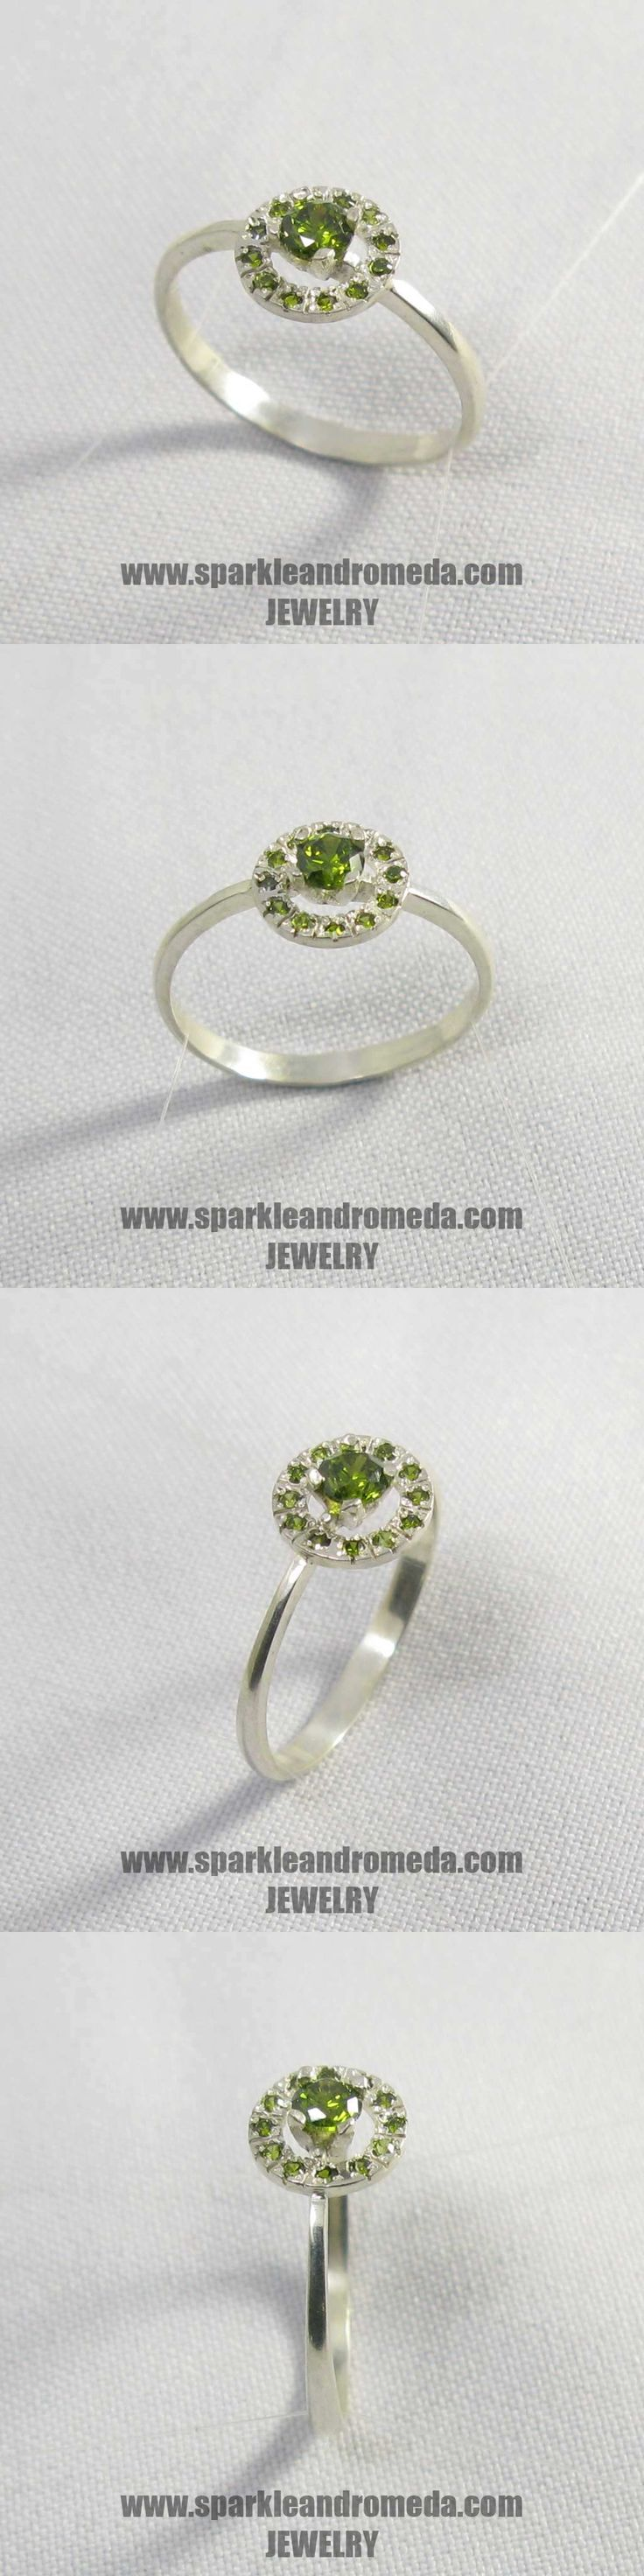 Sterling 925 silver ring with 1 round 4 mm and 12 round 1,25 mm green peridot color cubic zirconia gemstones.